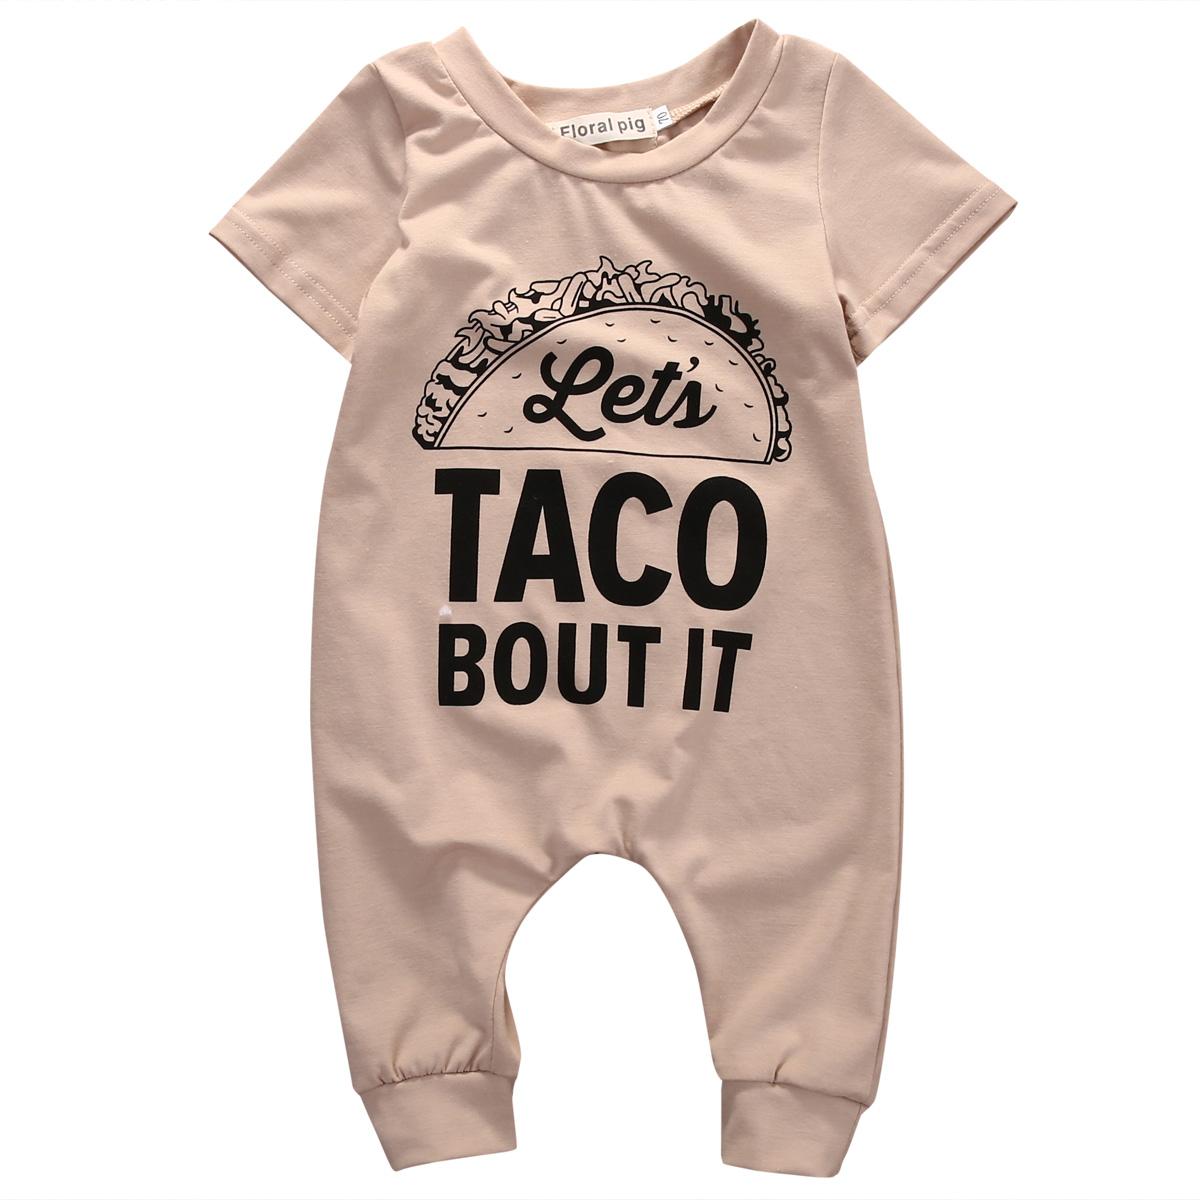 Kids Newborn Toddler Infant Baby Boys Girls Short Sleeve Romper Jumpsuit Cotton Clothes Sets 0-18M newborn baby girls rompers 100% cotton long sleeve angel wings leisure body suit clothing toddler jumpsuit infant boys clothes